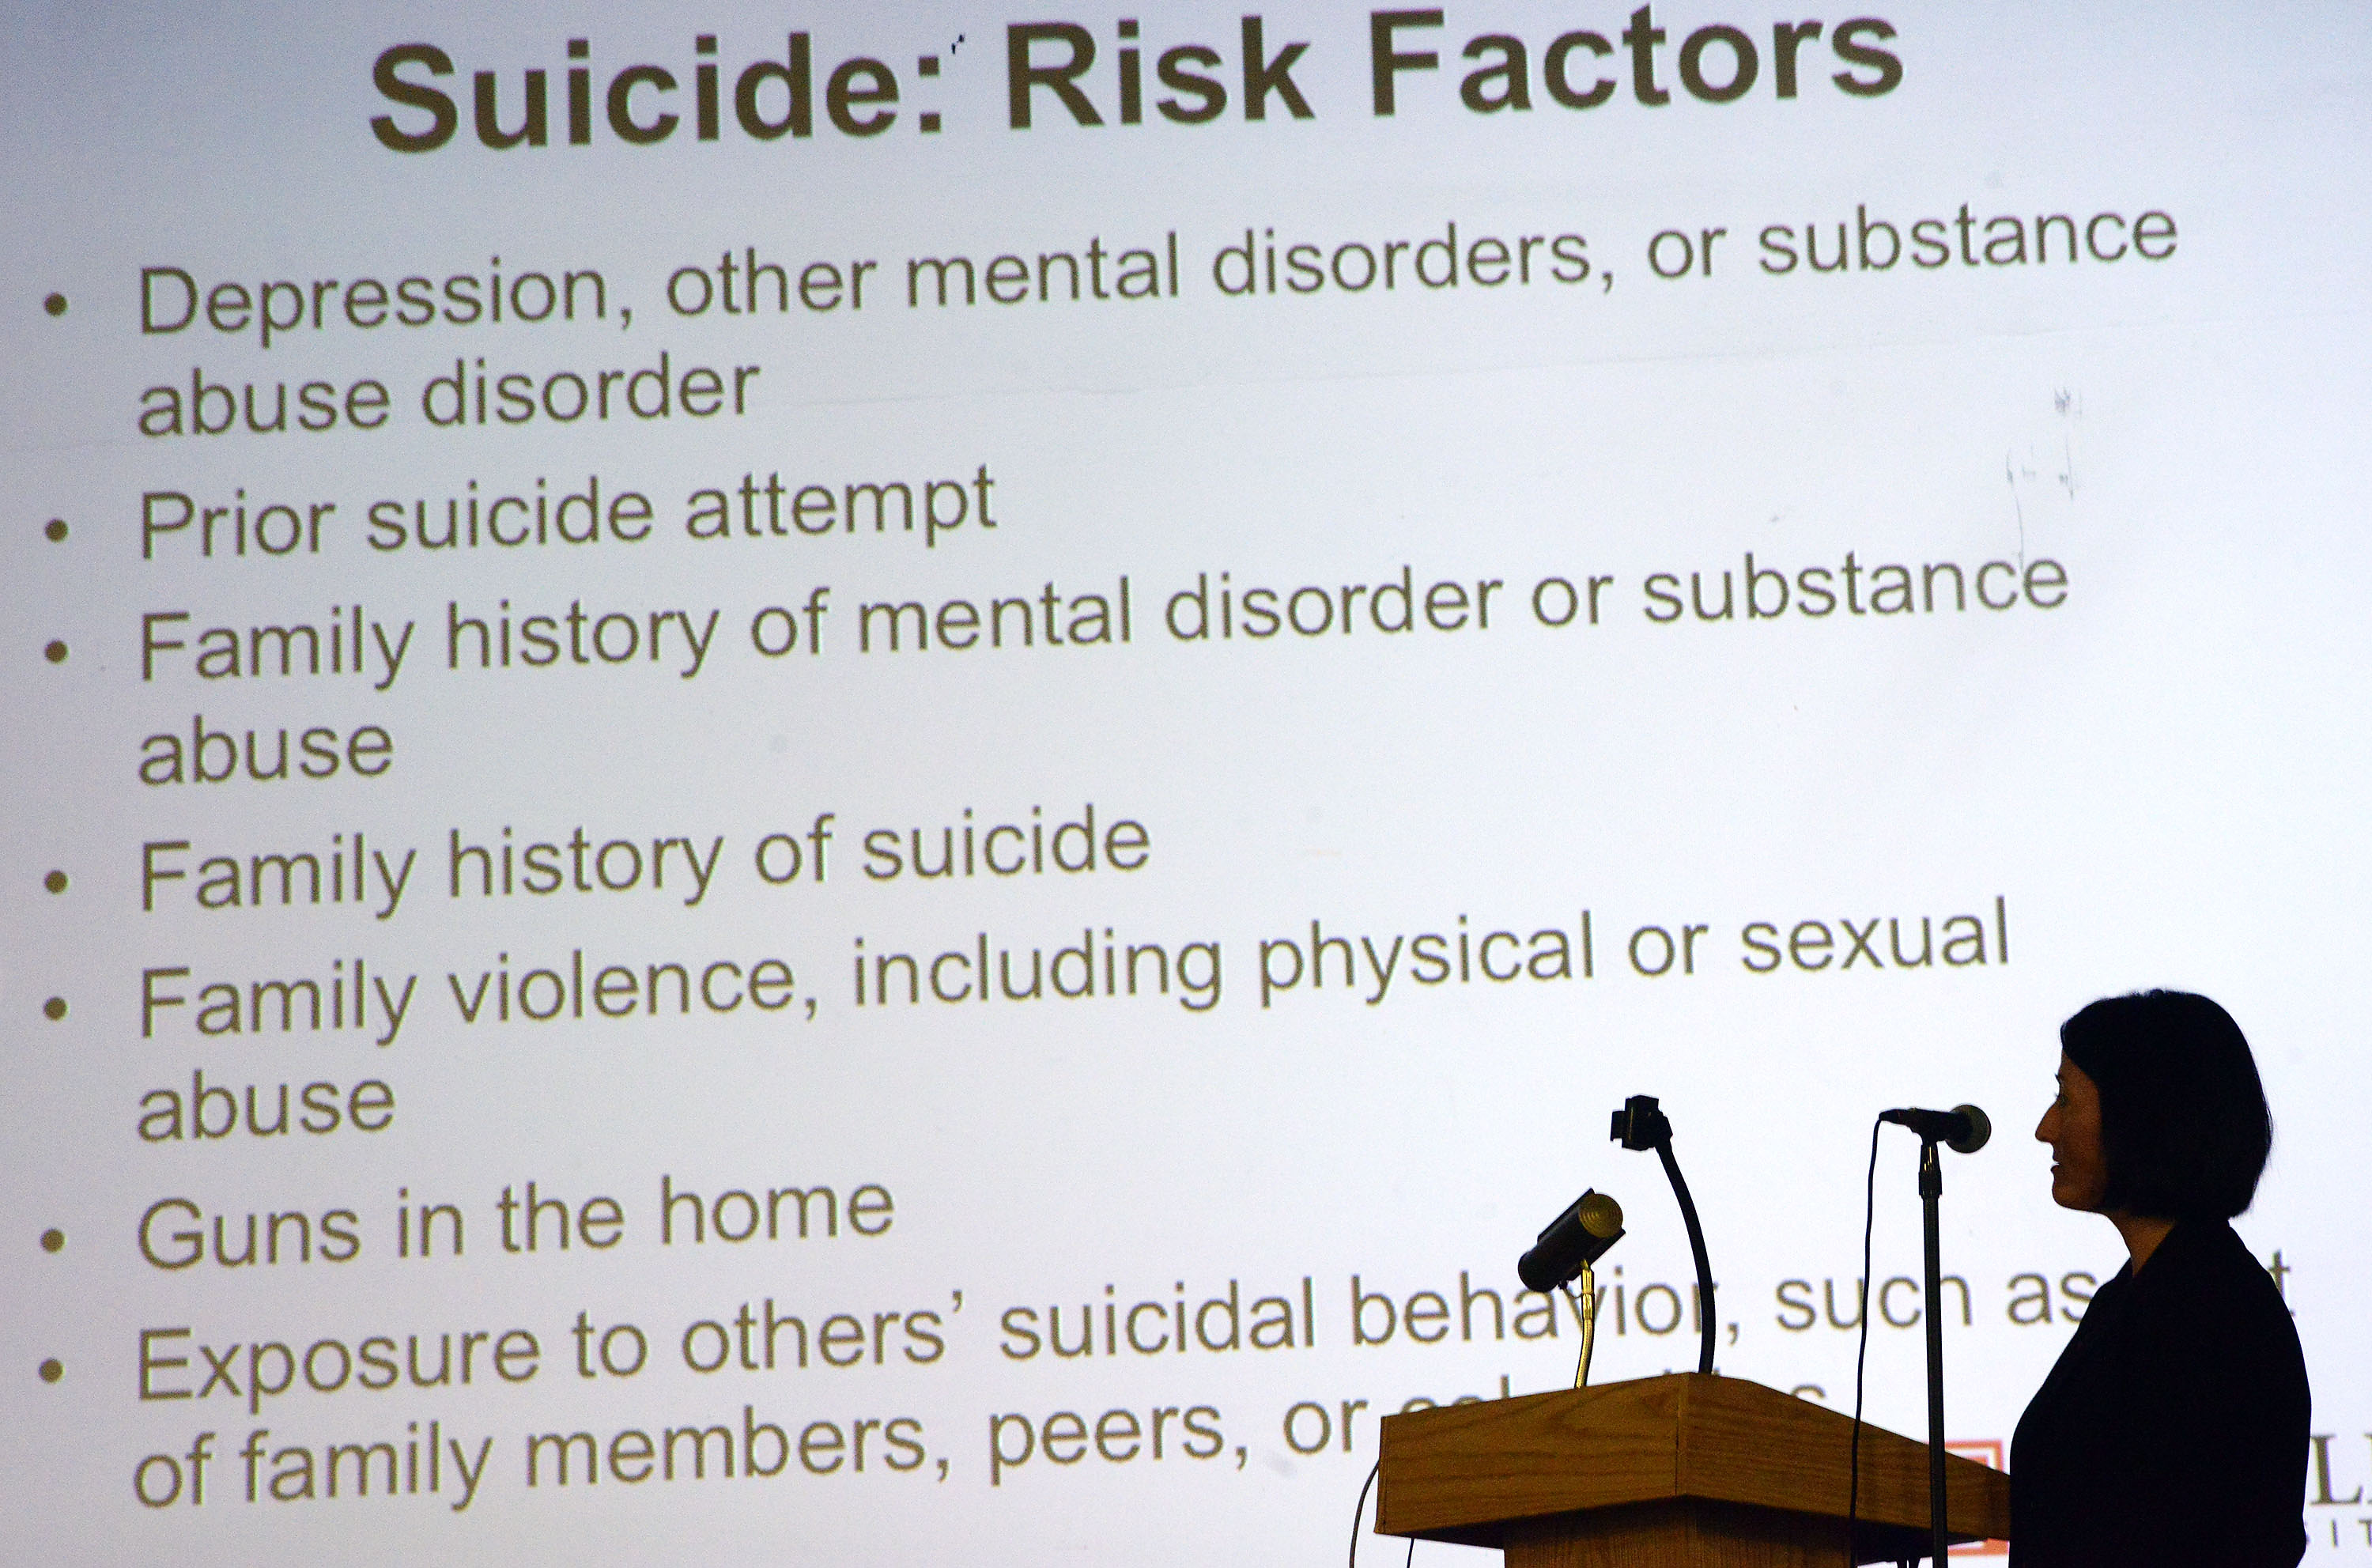 Ruby Barghini, a psychiatry resident at Temple University Hospital is silhouetted as she speaks about risk factors during a suicide prevention presentation for teachers and administrators Monday, August 28, 2017 at Prep Charter School in Philadelphia, Pennsylvania.(WILLIAM THOMAS CAIN / For The Philadelphia Inquirer)